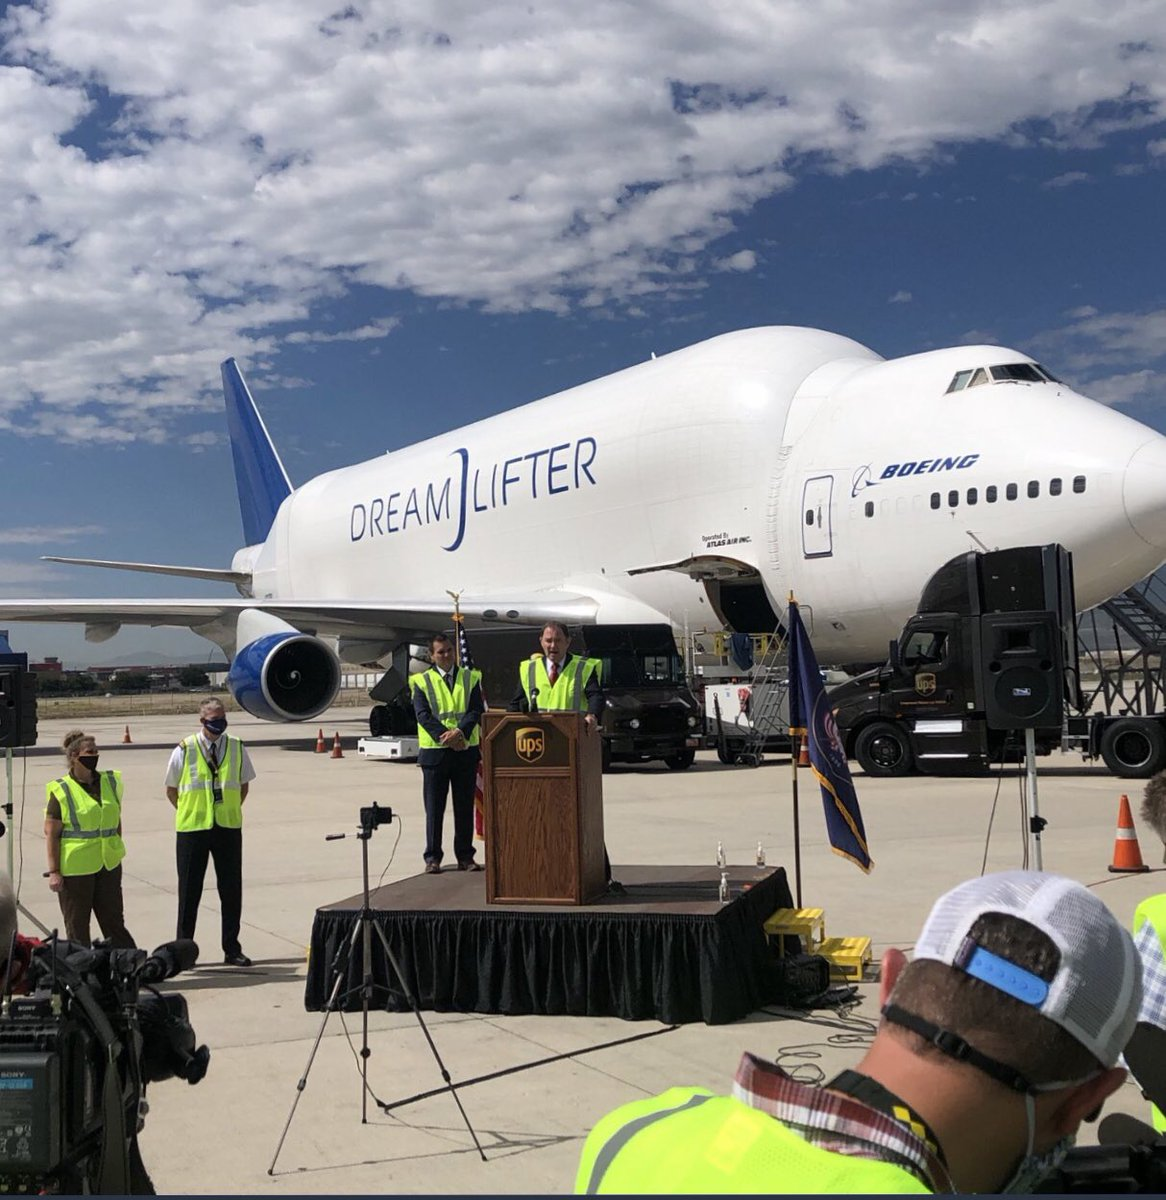 Supporting our friends at Boeing - Cotopaxi and so many others that brought in face mask for the children of UTAH!! Gods blessings on our Governor Herbert and our Utah leaders!! We are UPSNATION <br>http://pic.twitter.com/rdFWwCvF2J